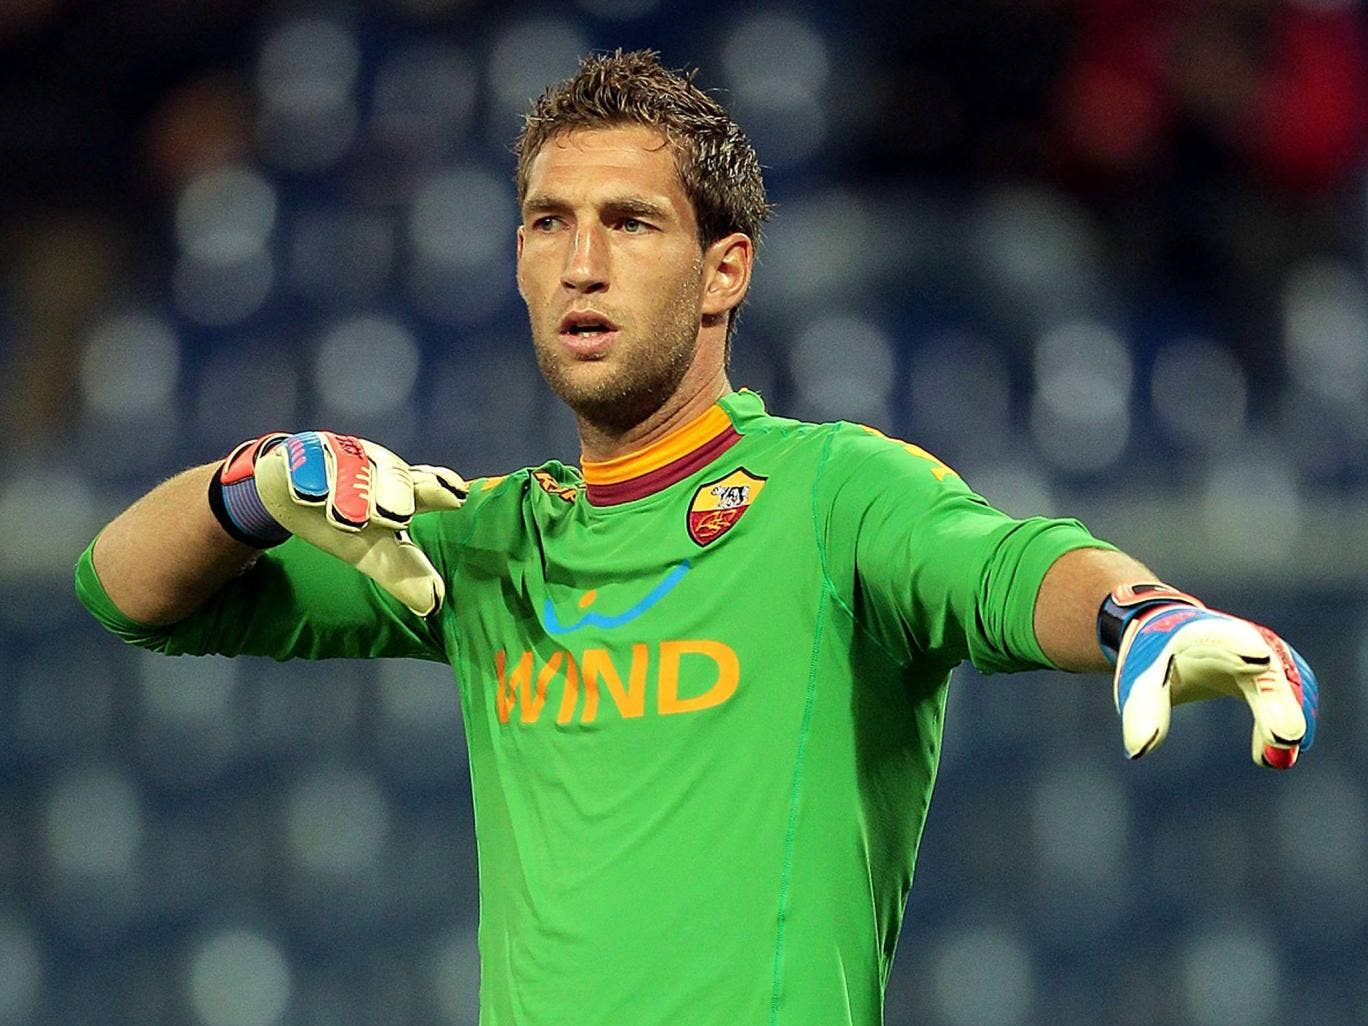 <b>Maarten Stekelenburg</b><br/> The Netherlands international has been linked with a move to the Premier League for a long time, with recent rumours suggesting Fulham were hoping to sign the Roma stopper. The former Ajax goalkeeper was strongly linked wi